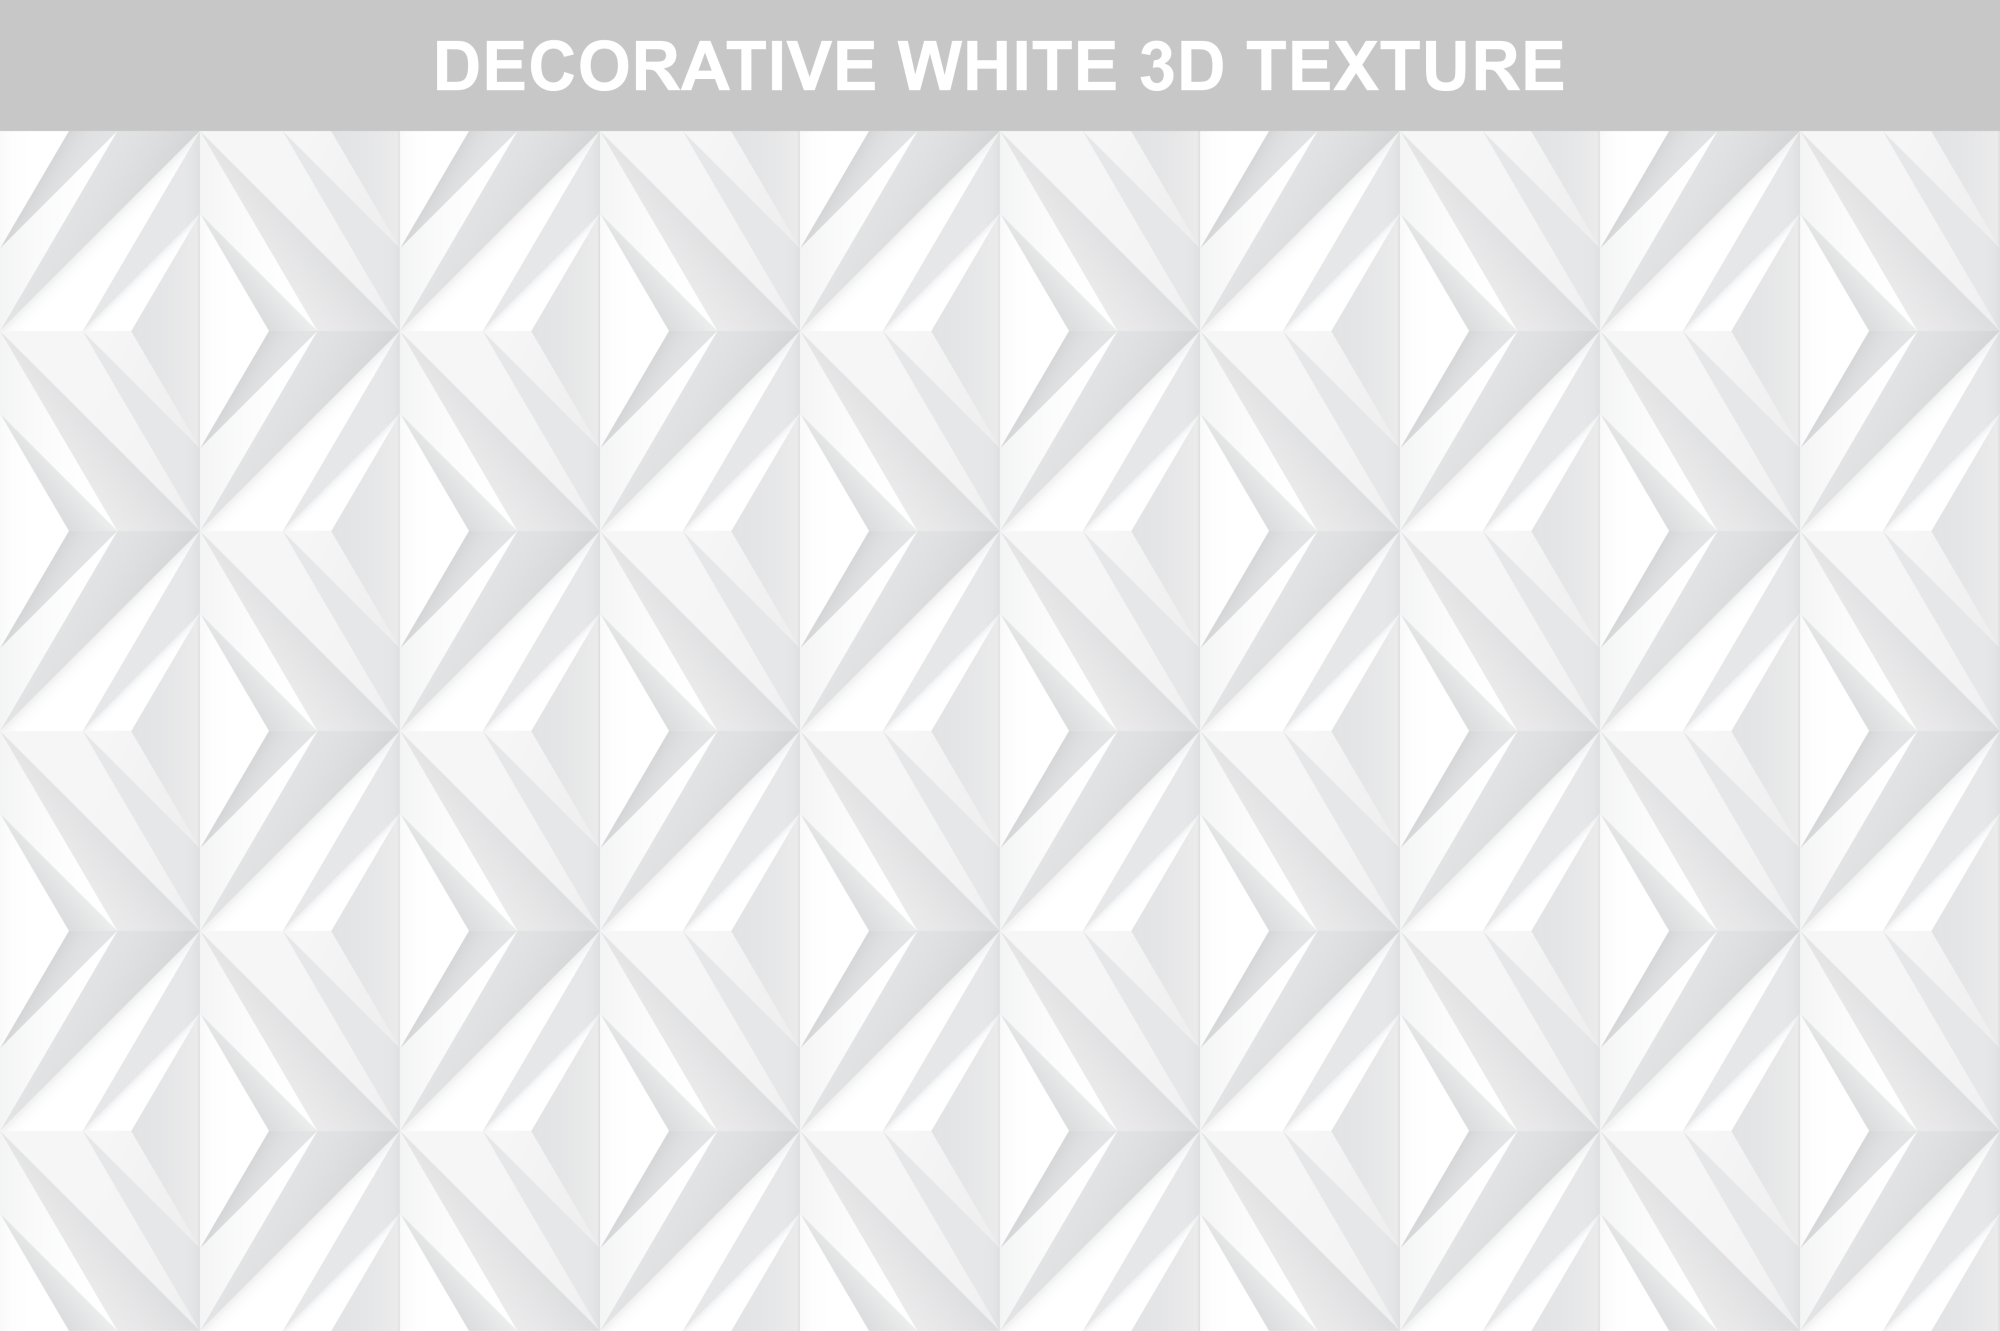 White decorative 3d texture.Seamless example image 1